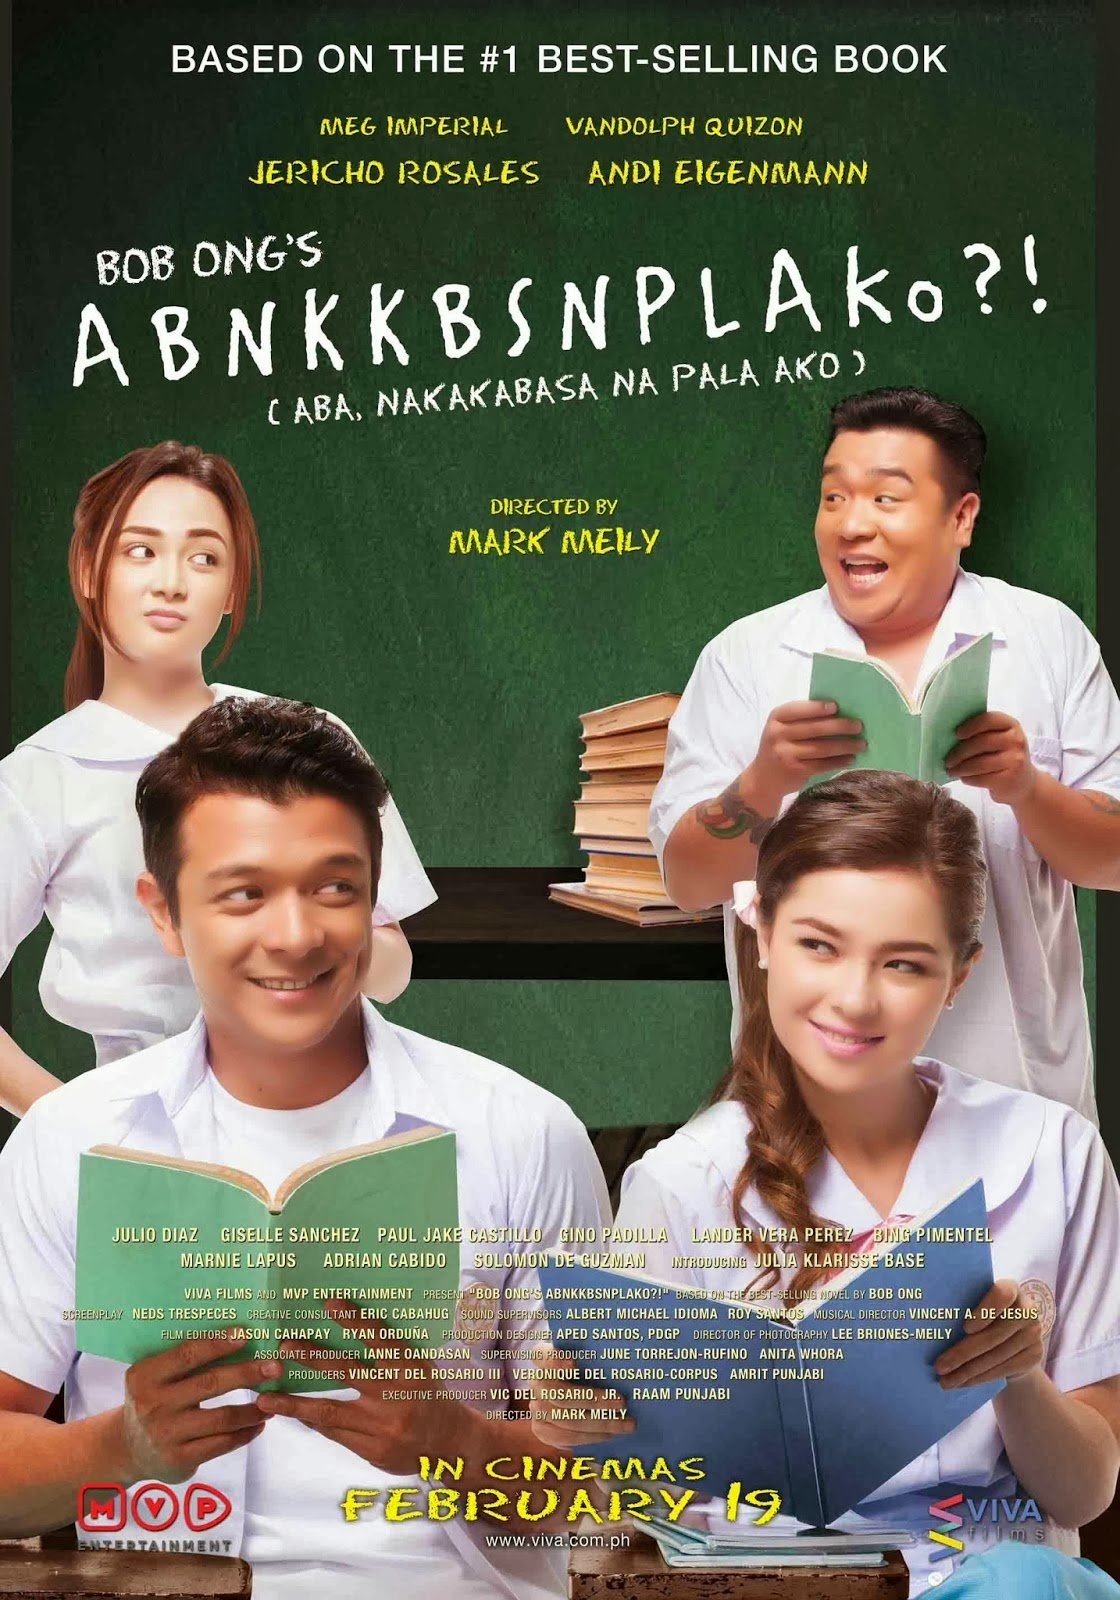 ABNKKBSNPLAko?! The Movie - Get My Popcorn Now !!